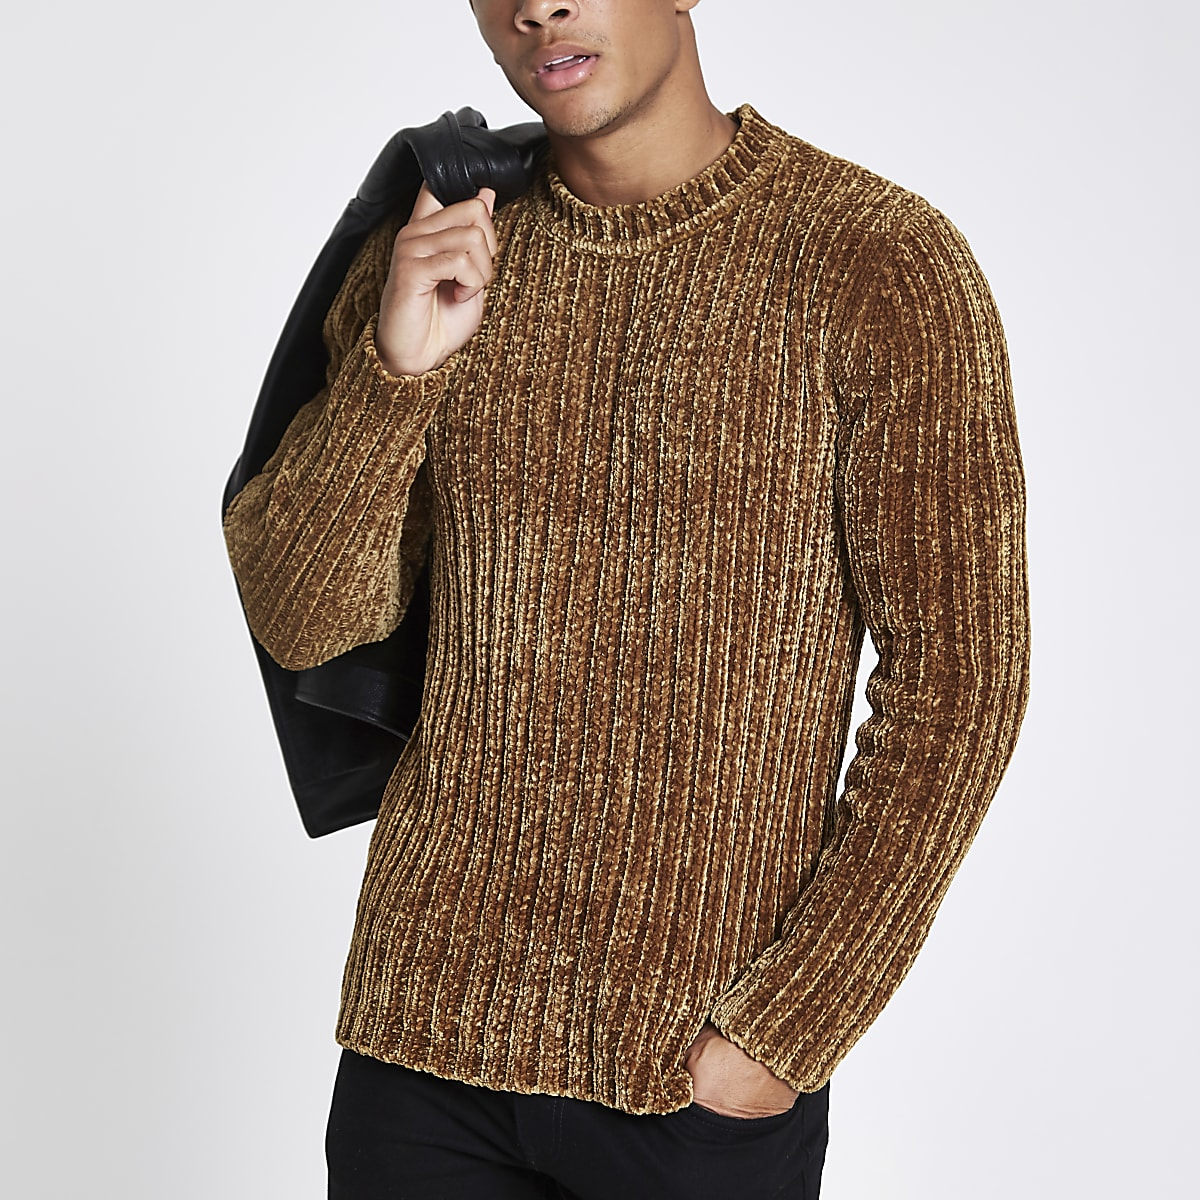 b62d91bacd9704 Brown muscle fit chenille knit sweater Brown muscle fit chenille knit  sweater ...